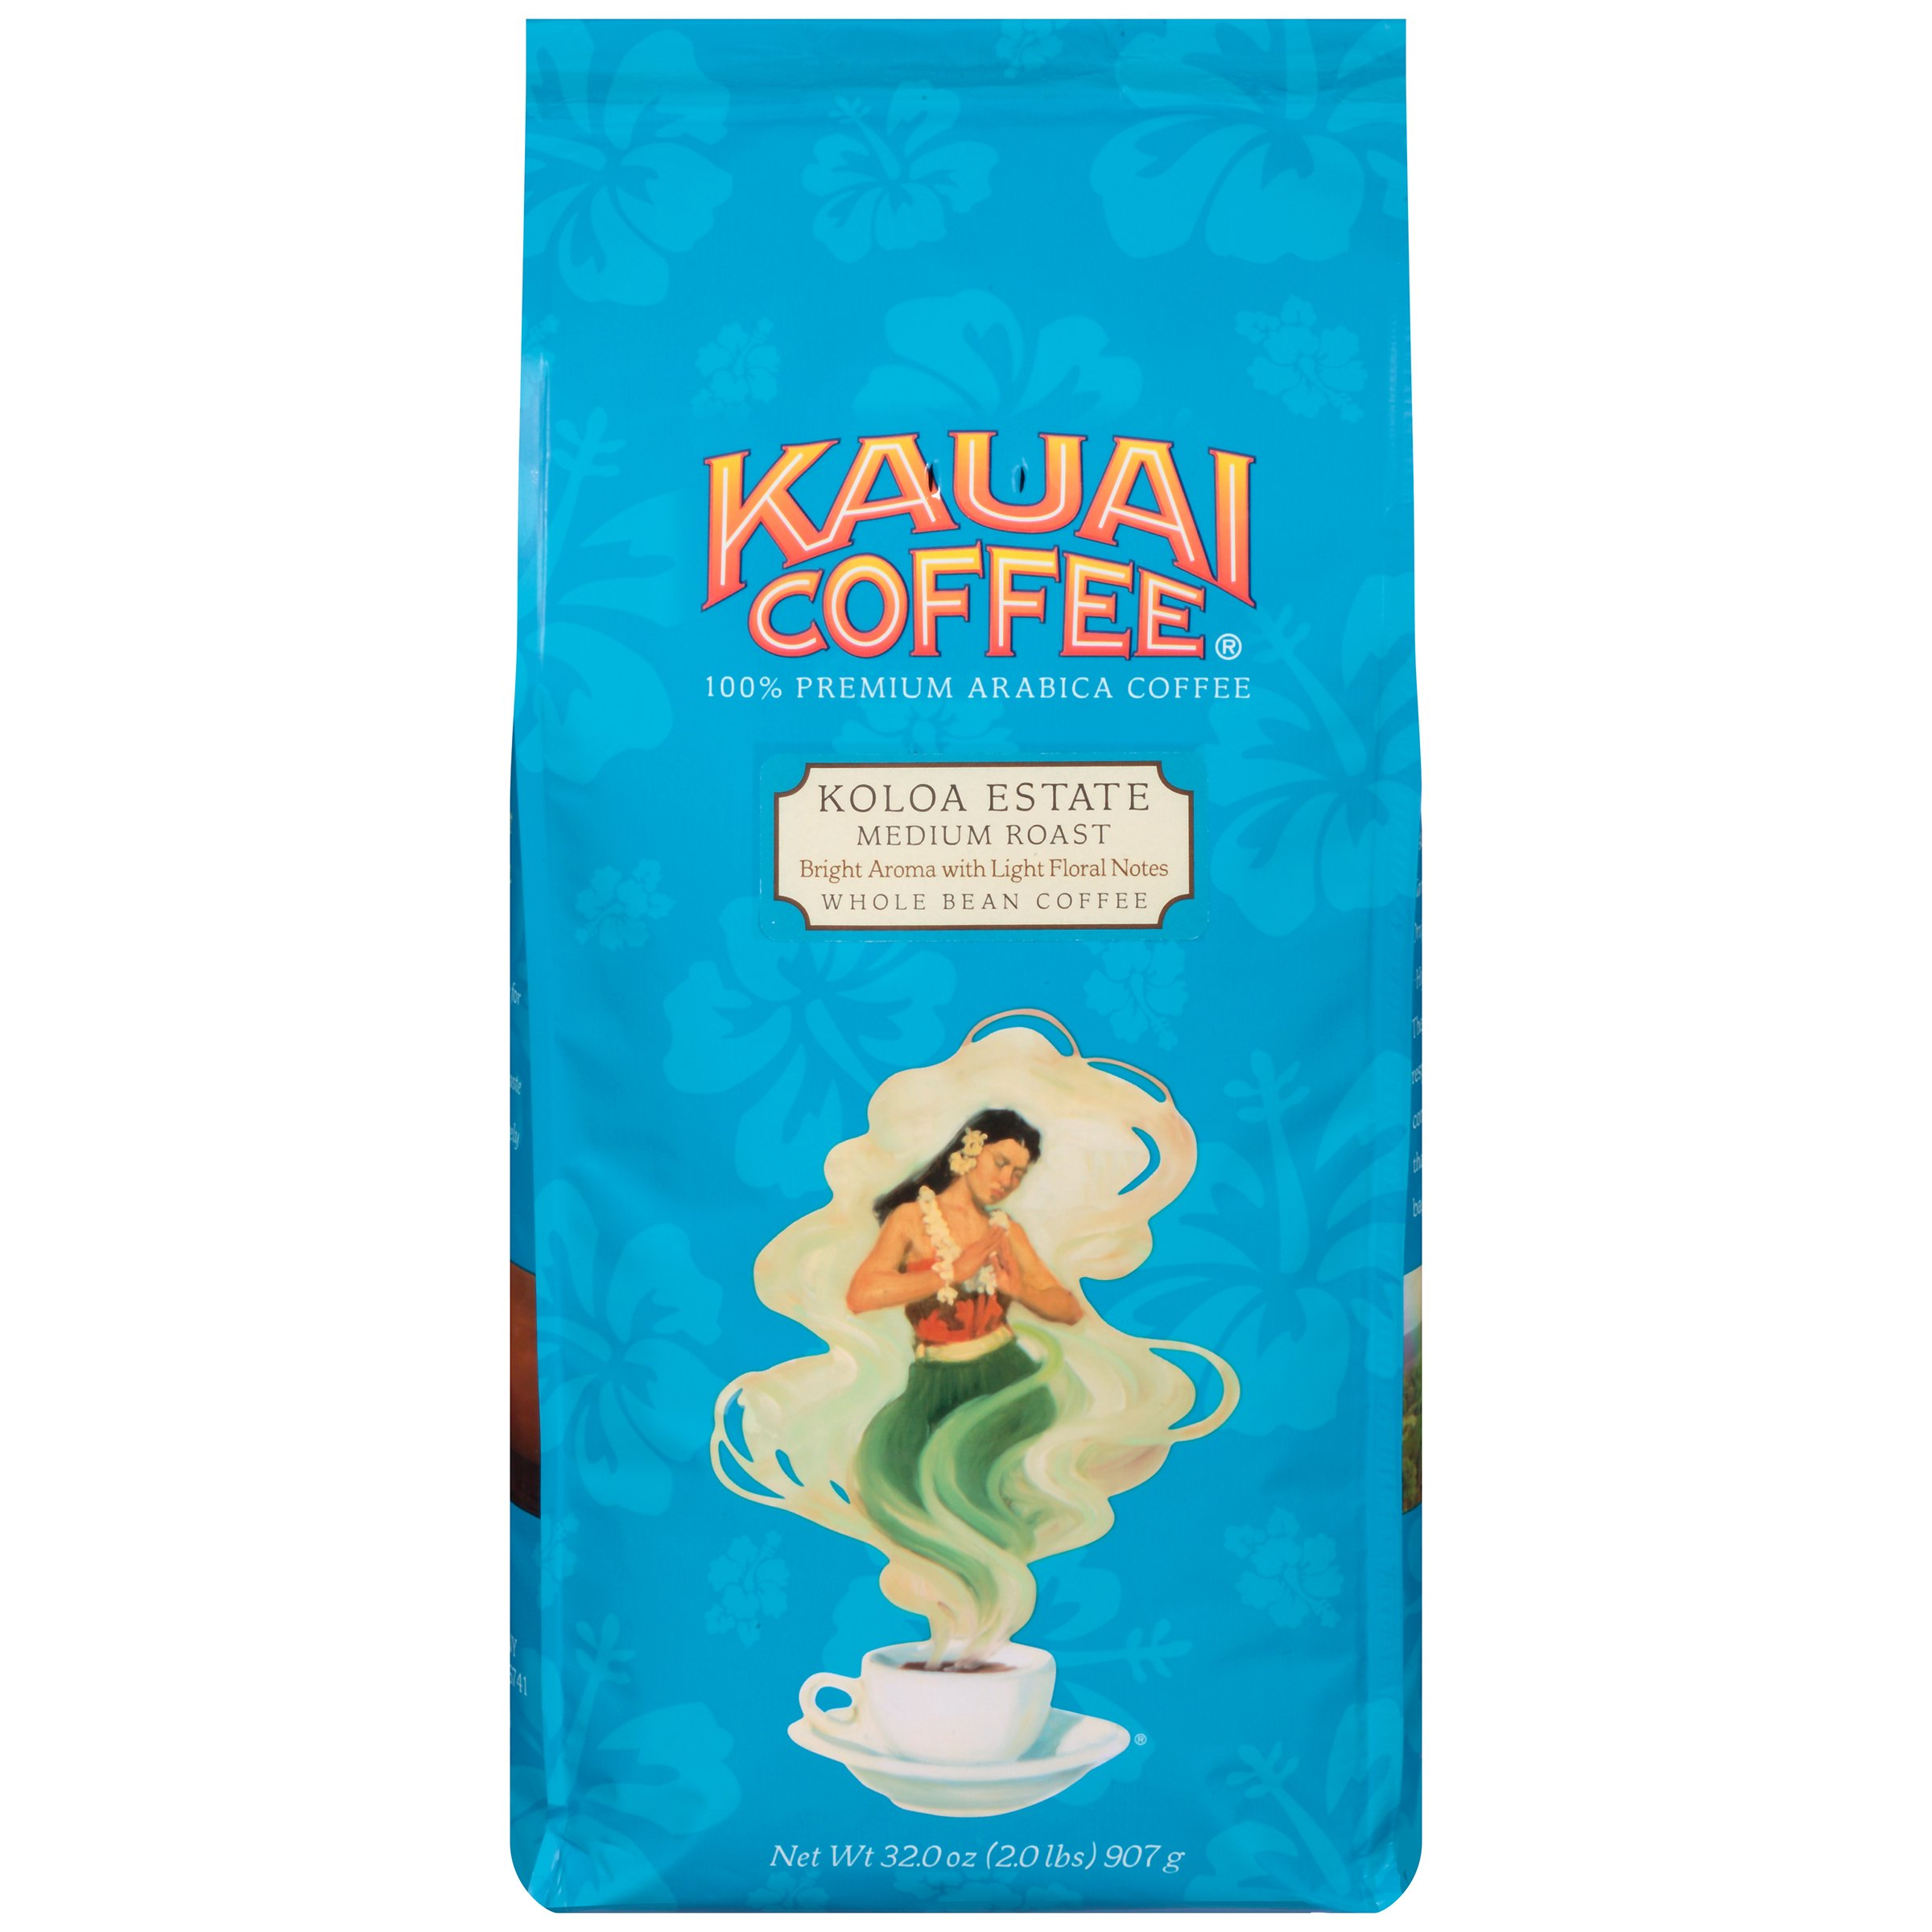 Kauai Whole Bean Coffee, Koloa Estate Medium Roast - 100% Premium Arabica Whole Bean Coffee from Hawaii's Largest Coffee Grower - Bright Aroma with Light Floral Notes (32 Ounces) by Kauai Coffee